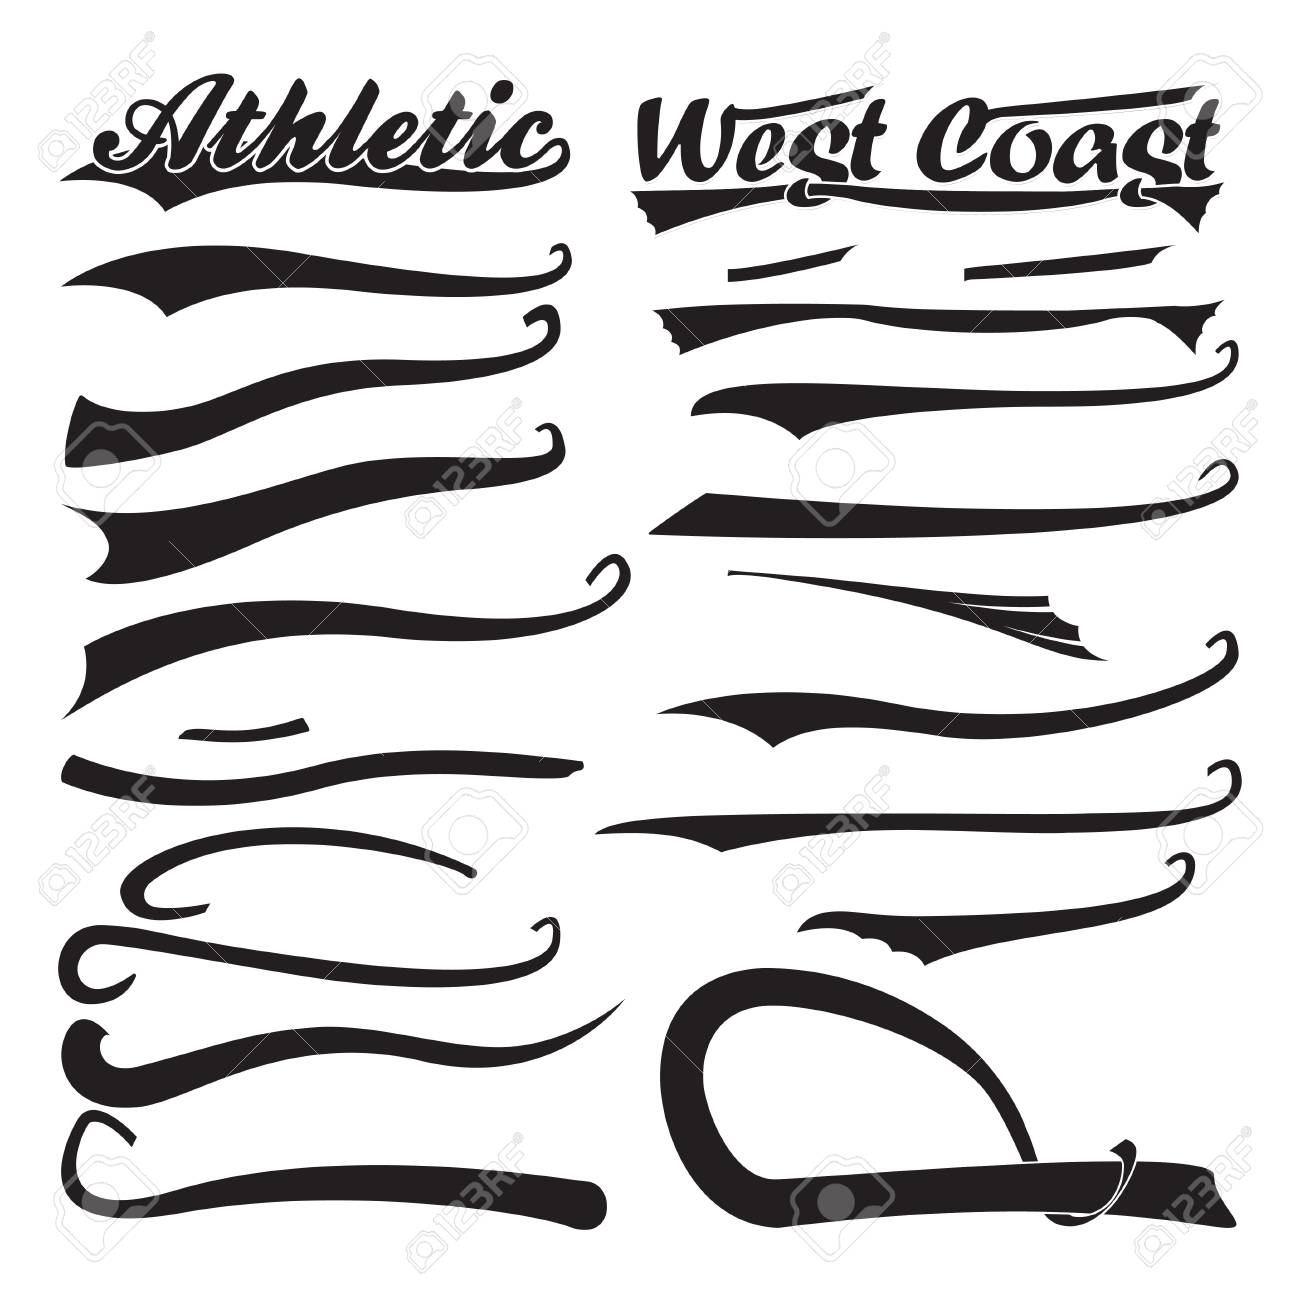 set of swooshes, sport underline swishes tail collection, highlighter..  royalty free cliparts, vectors, and stock illustration. image 126365078.  123rf